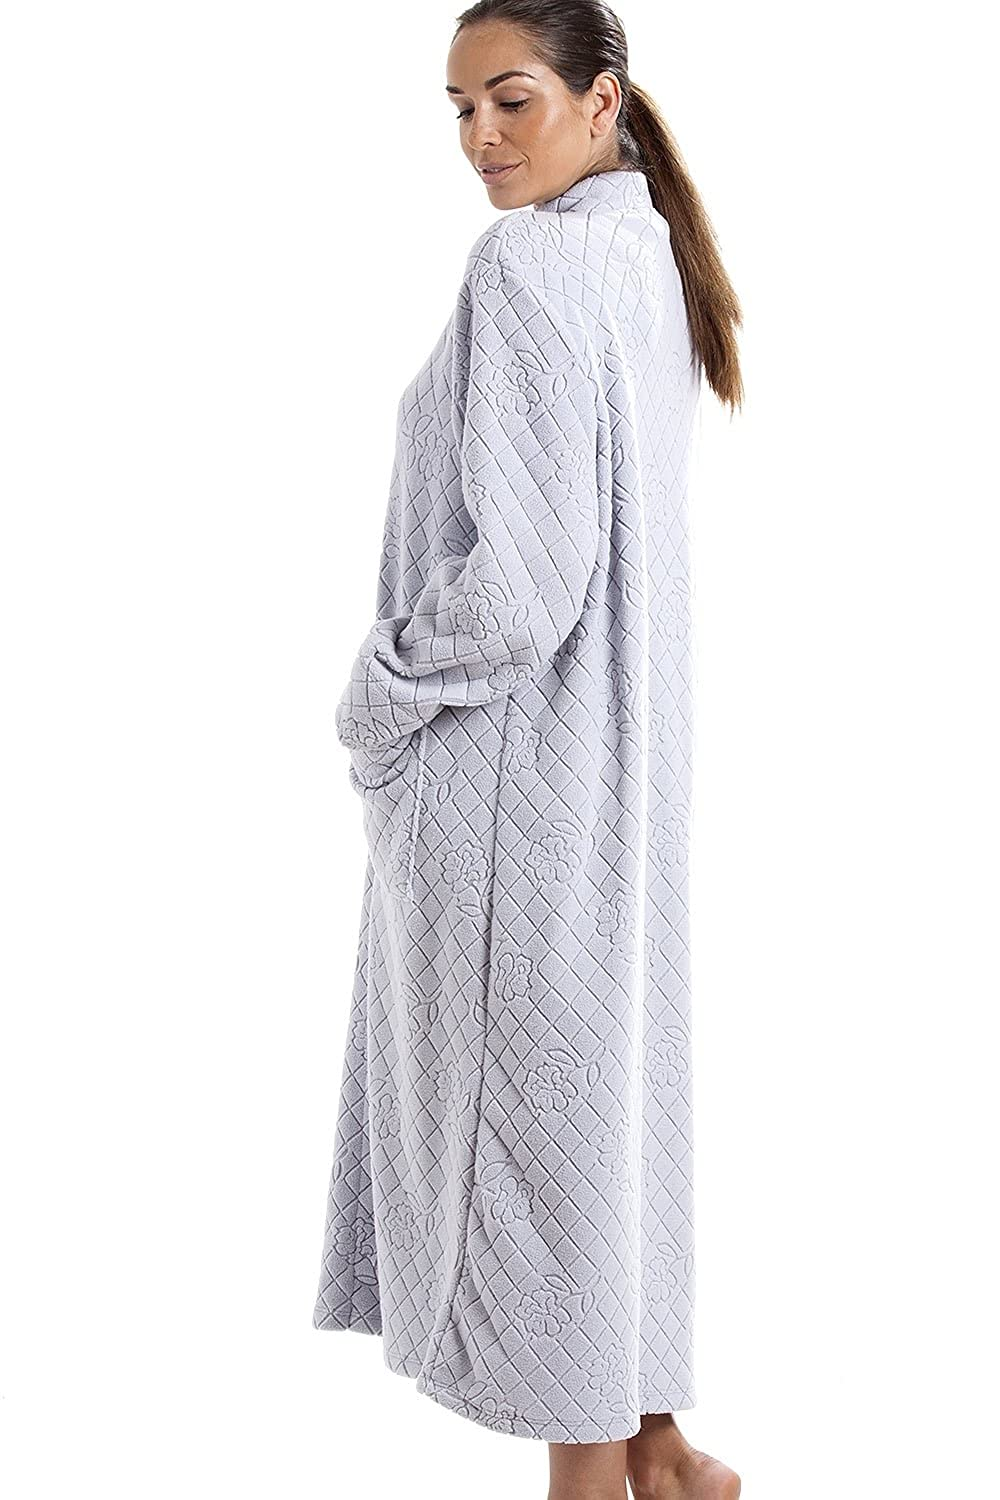 Camille Light Gray Soft Fleece Floral Full Length Button Up Housecoat at Amazon Womens Clothing store: